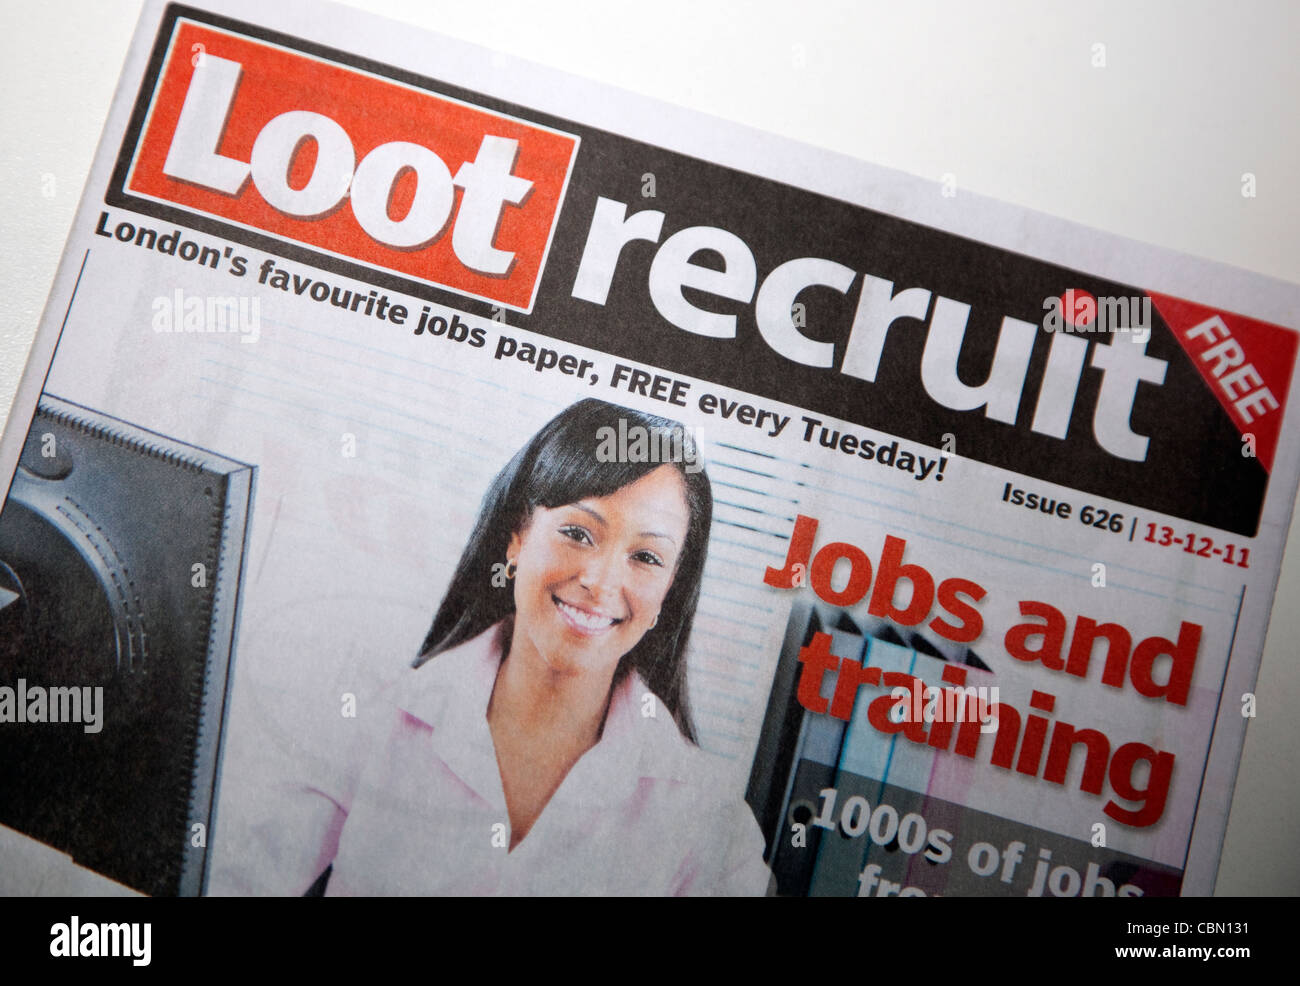 Loot Recruit free weekly jobs paper, London - Stock Image